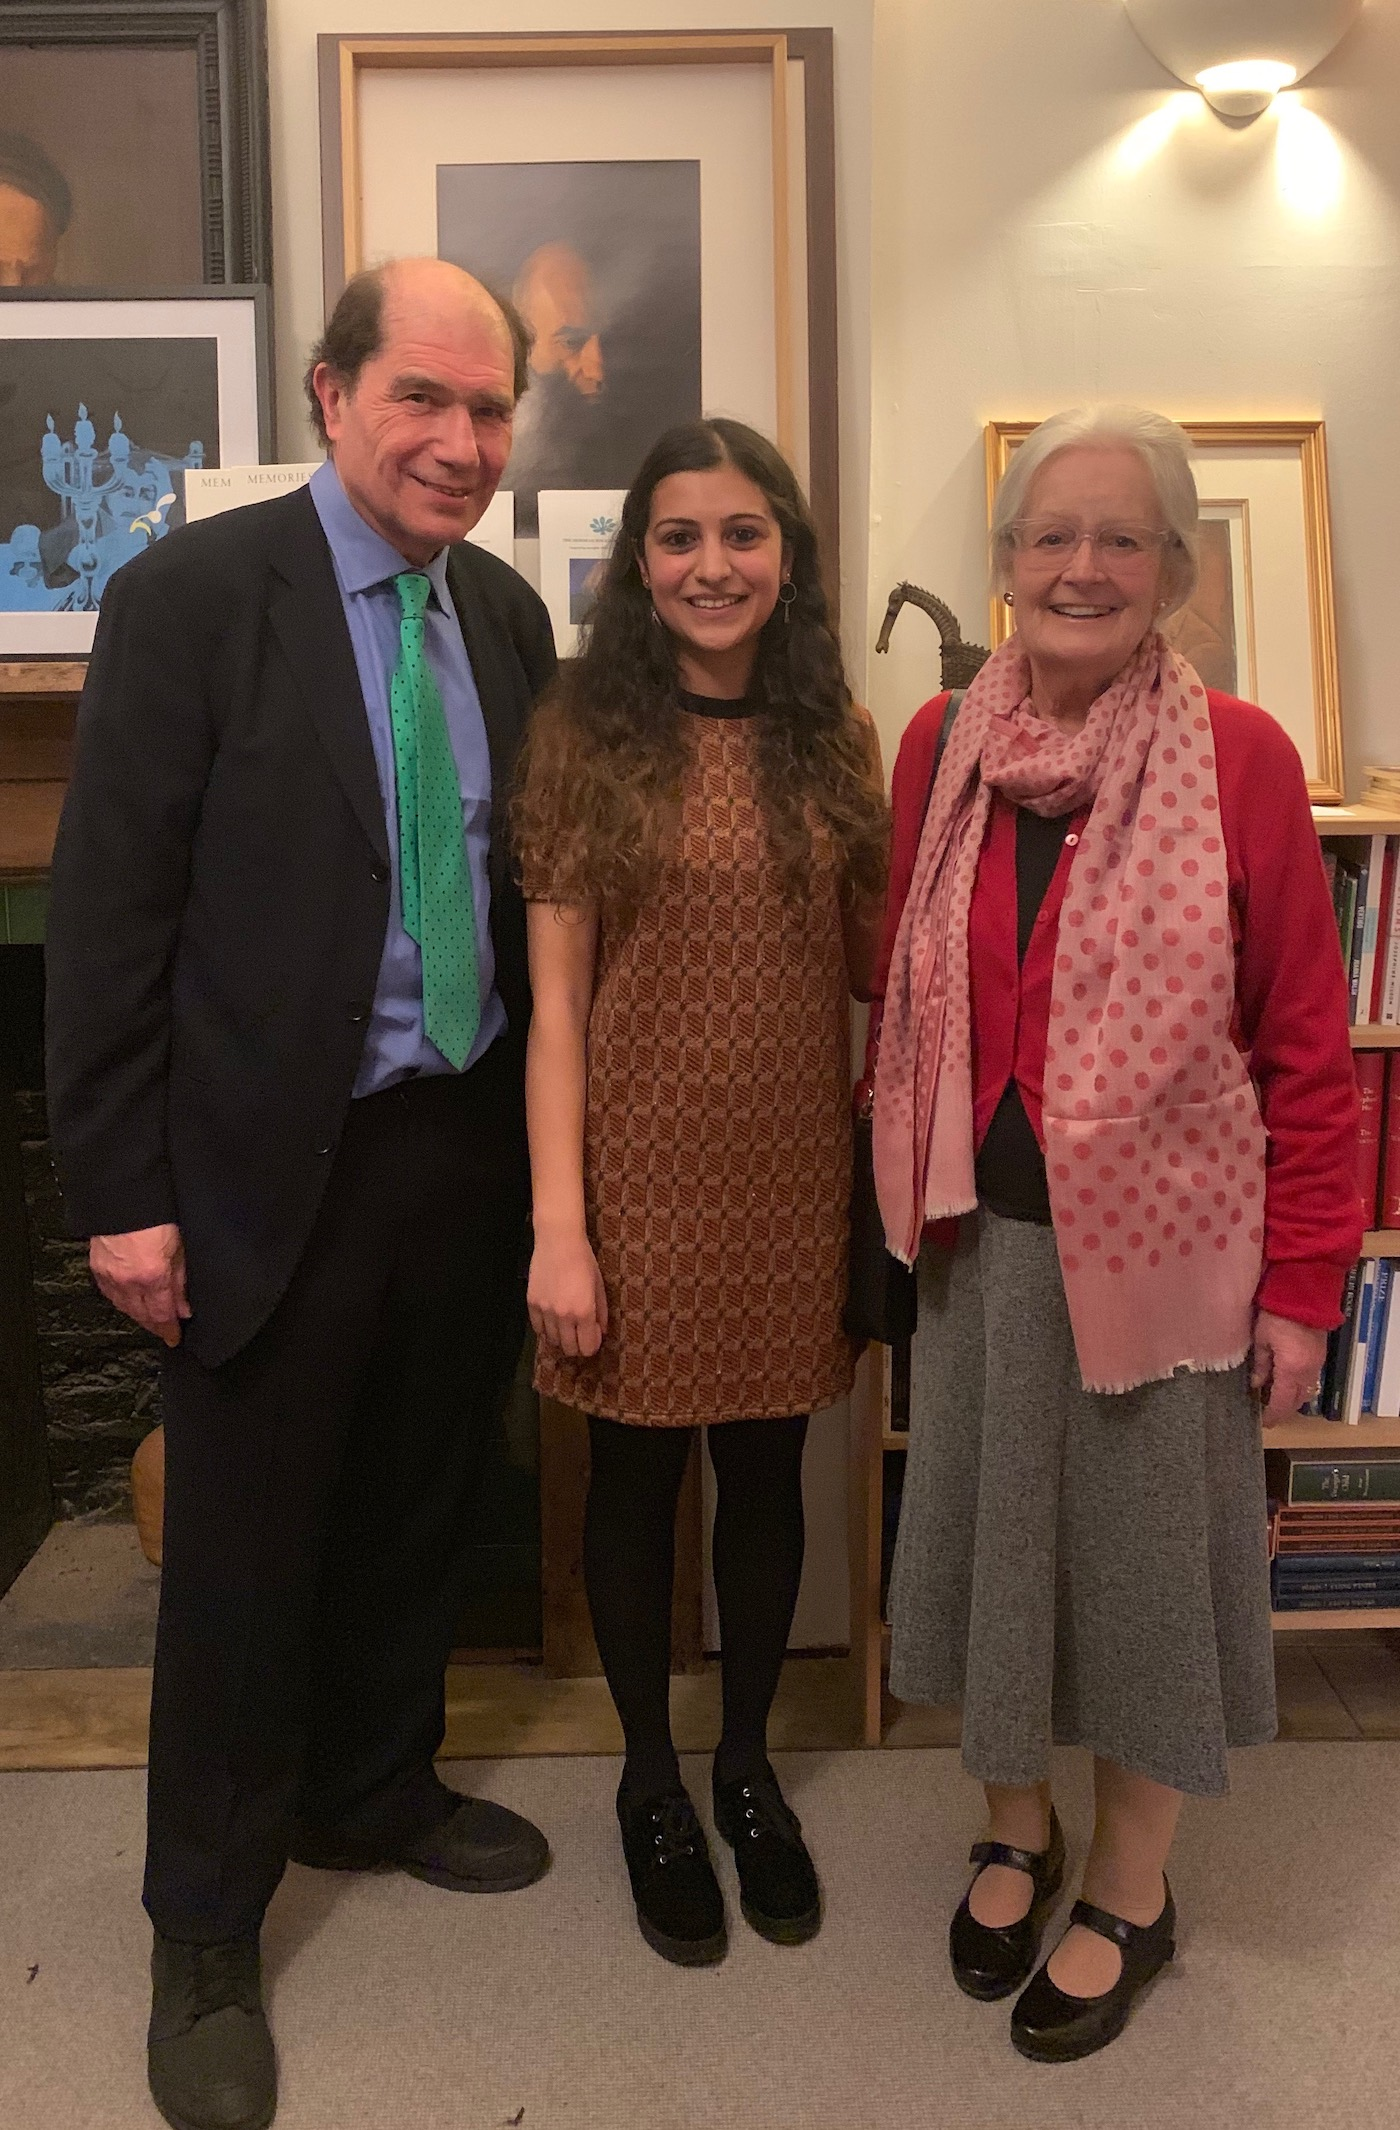 'Prema Raj, winner of the Deborah Rogers Foundation David Miller Bursary, with David Miller's mother June Miller and Michael Berkeley, Chairman, after receiving the award.'